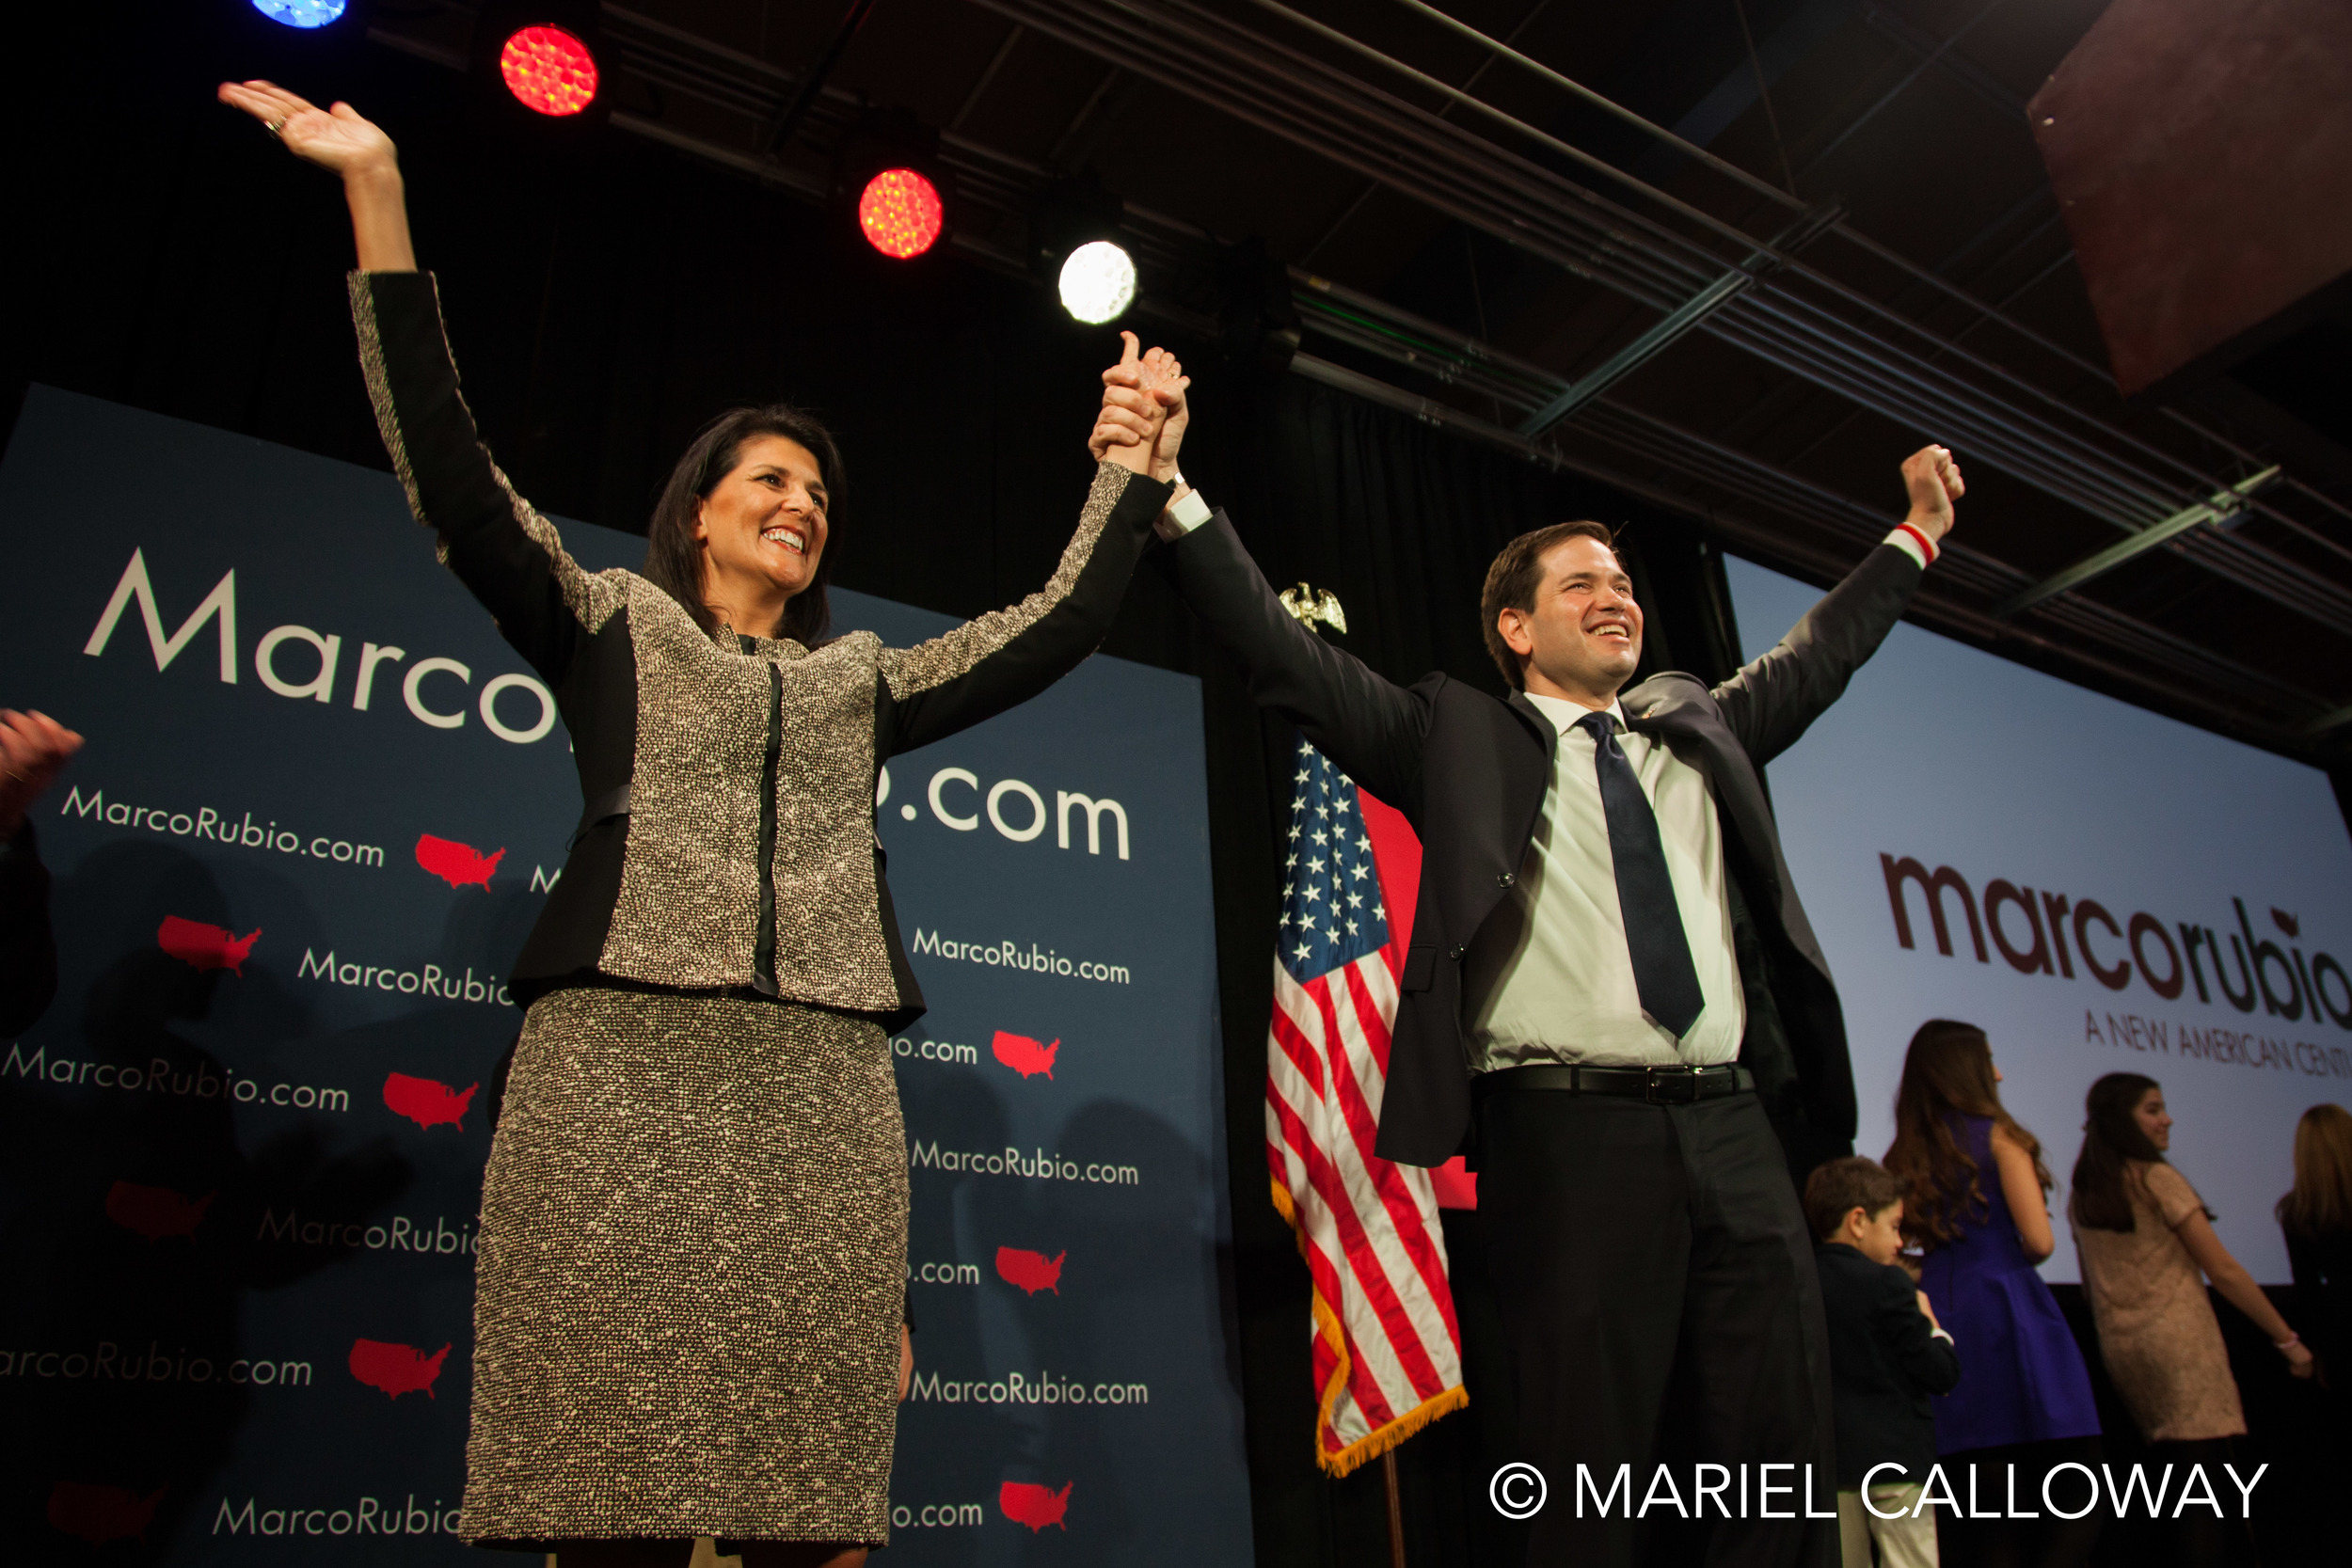 Marco-Rubio-South-Carolina-Primary-Small-35.jpg